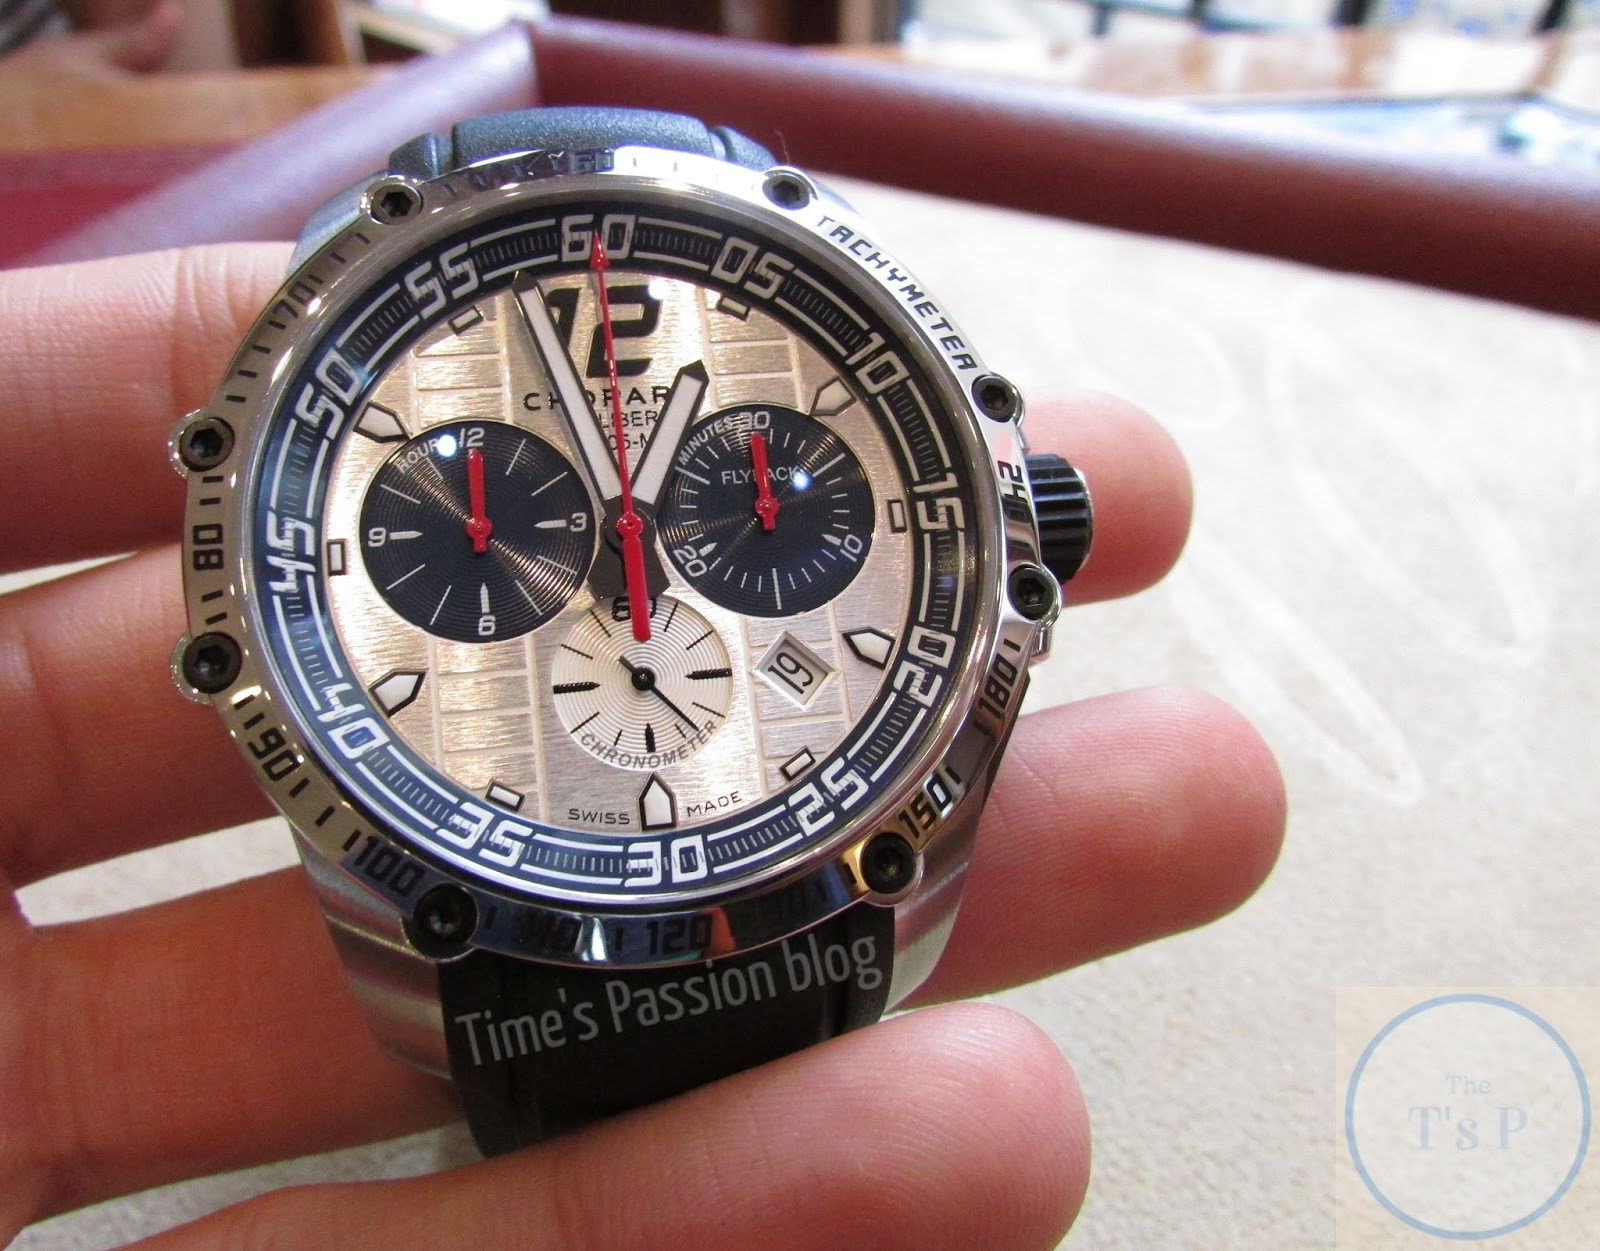 Blue Inner Bezel Chopard Superfast Chrono Porsche 919 Jacky Ickx Edition Replica Watch